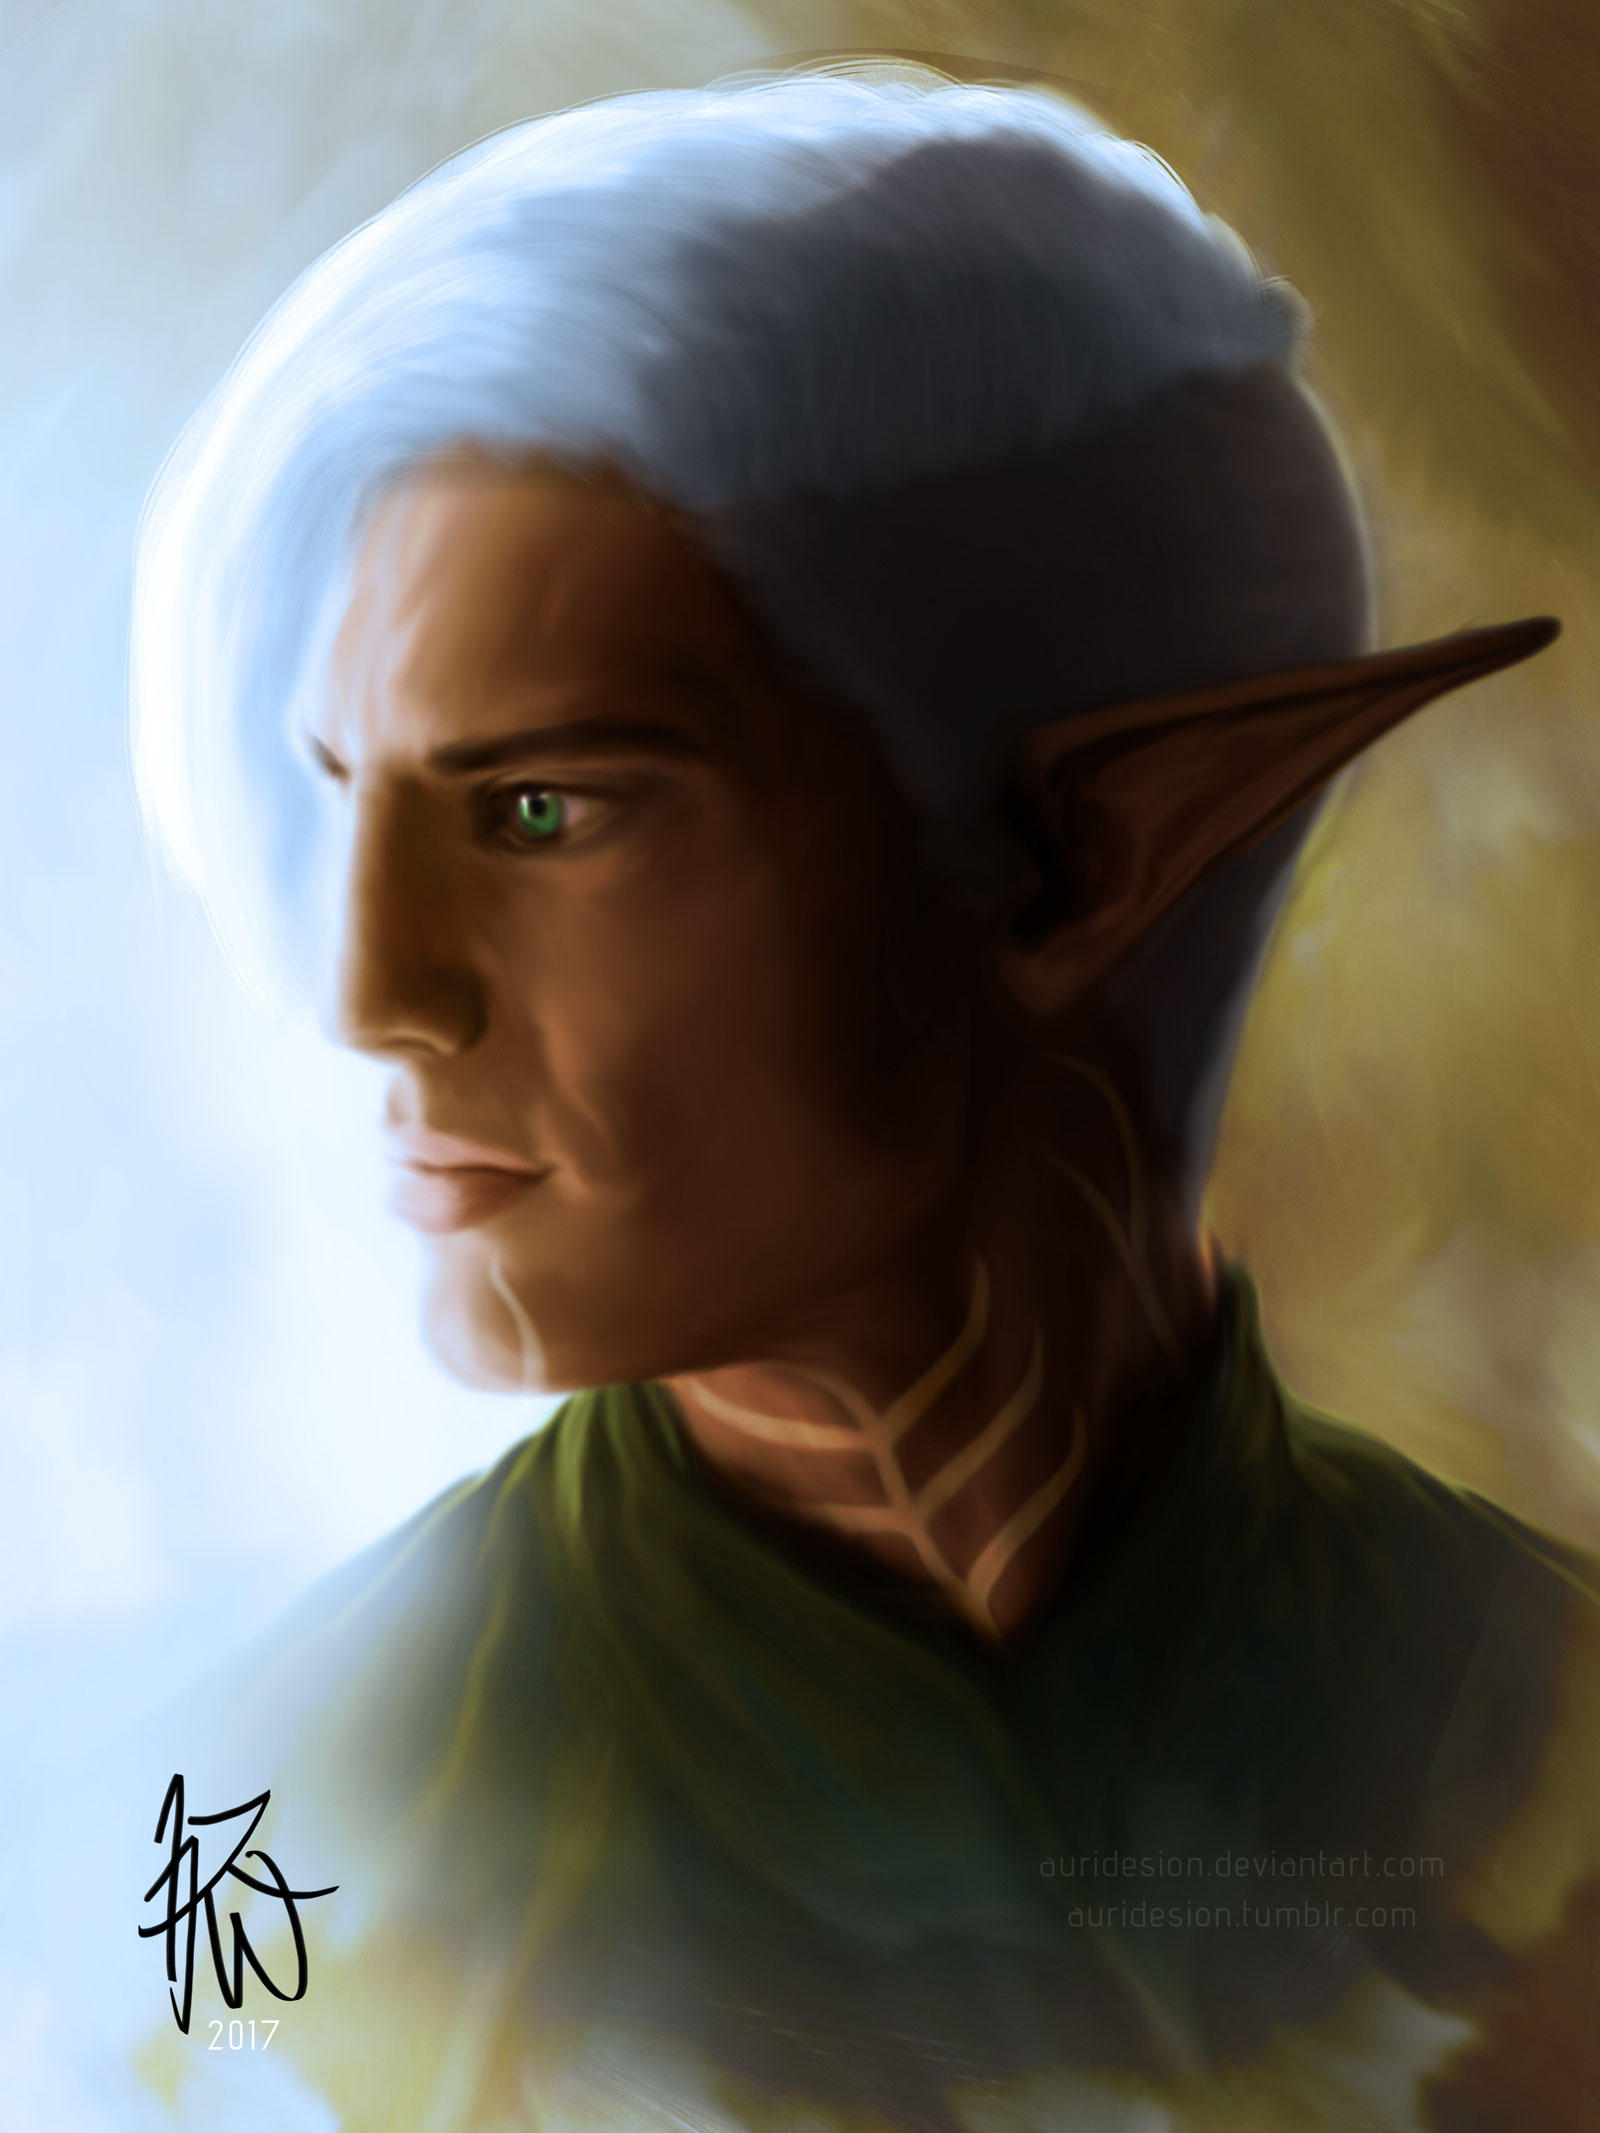 Fenris Profile - Short Undercut by Auridesion